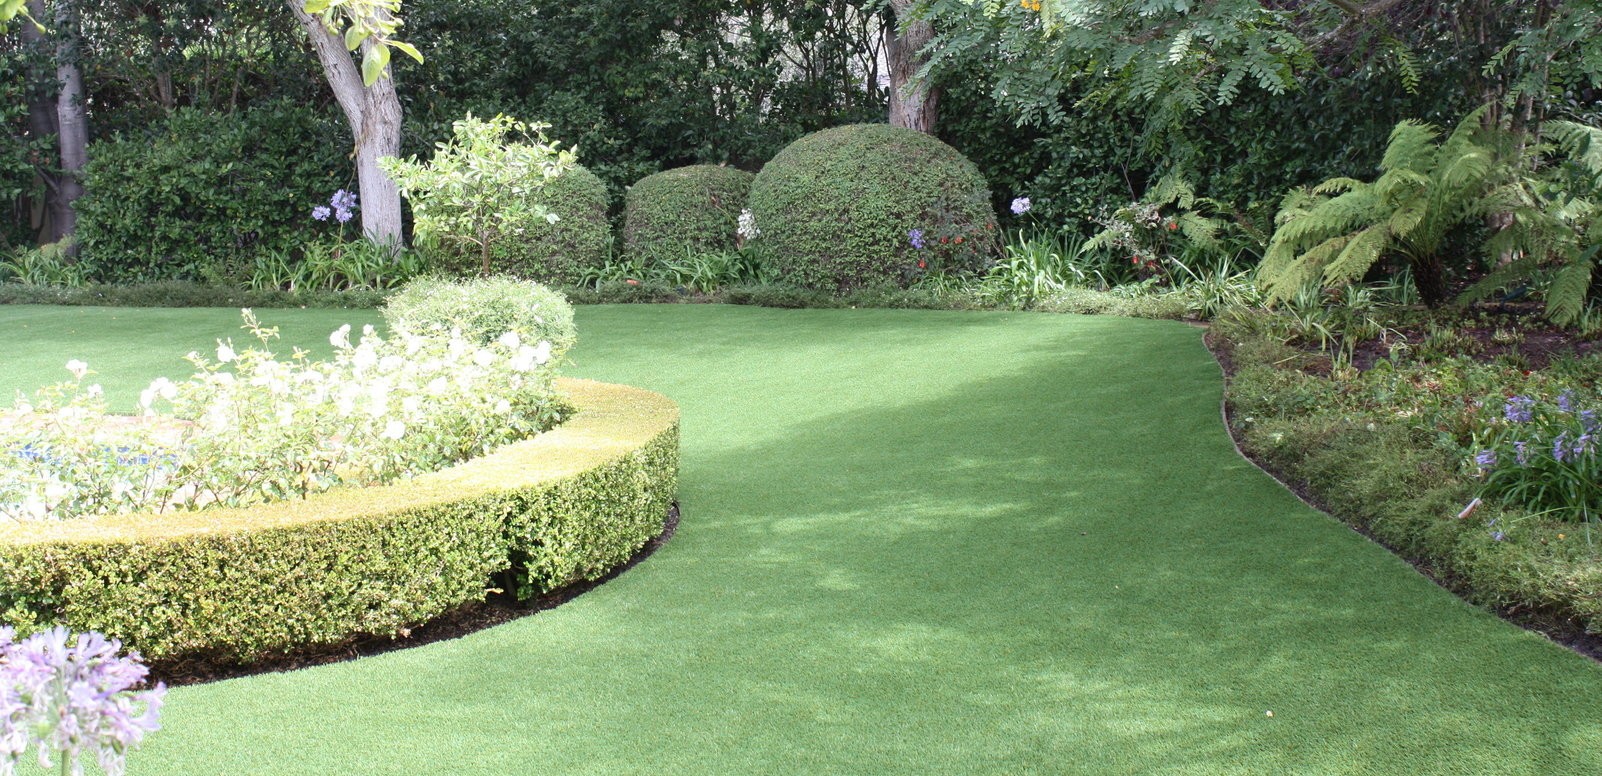 green-lawn-bushes-e1432261180331